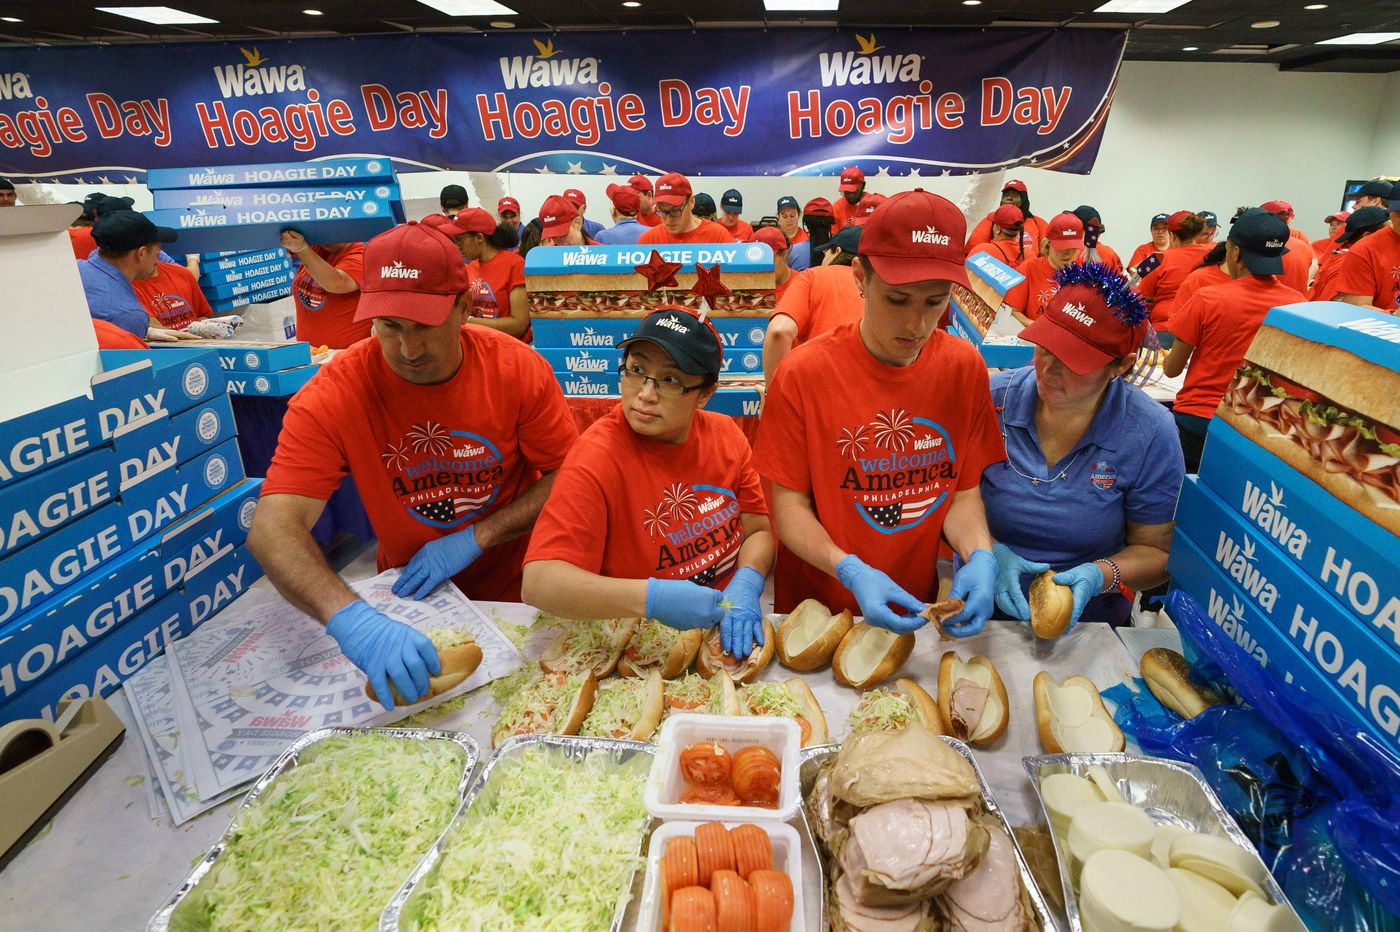 Philadelphians line up for 9 tons of free hoagies on Wawa's Hoagie Day